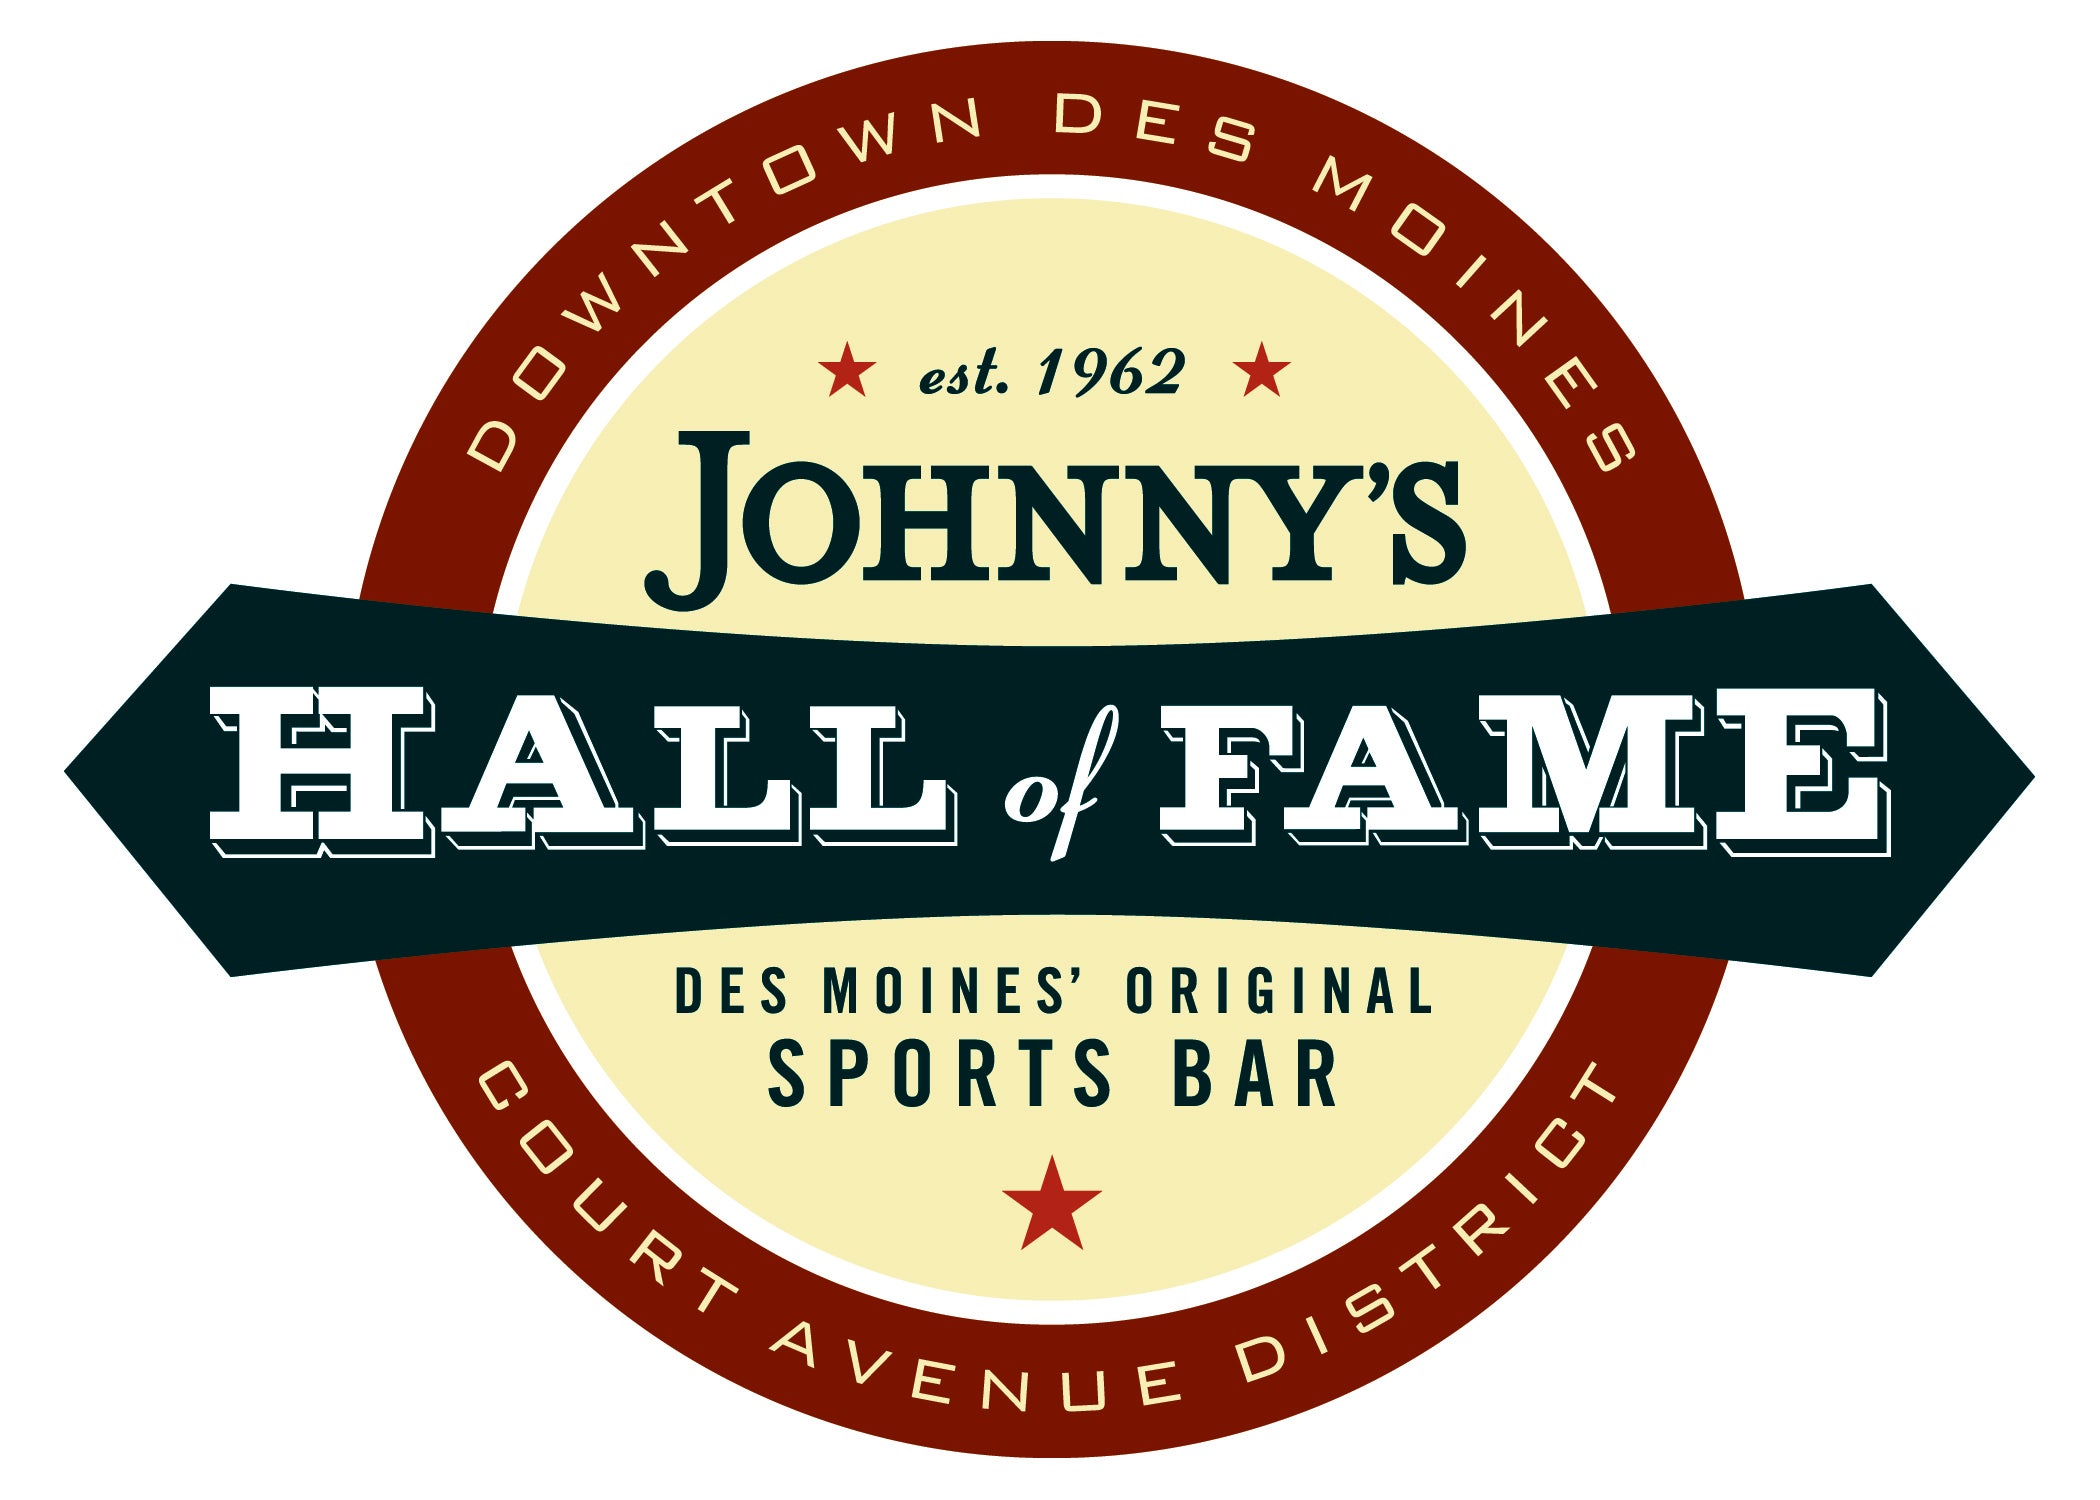 Johnny's Hall of Fame